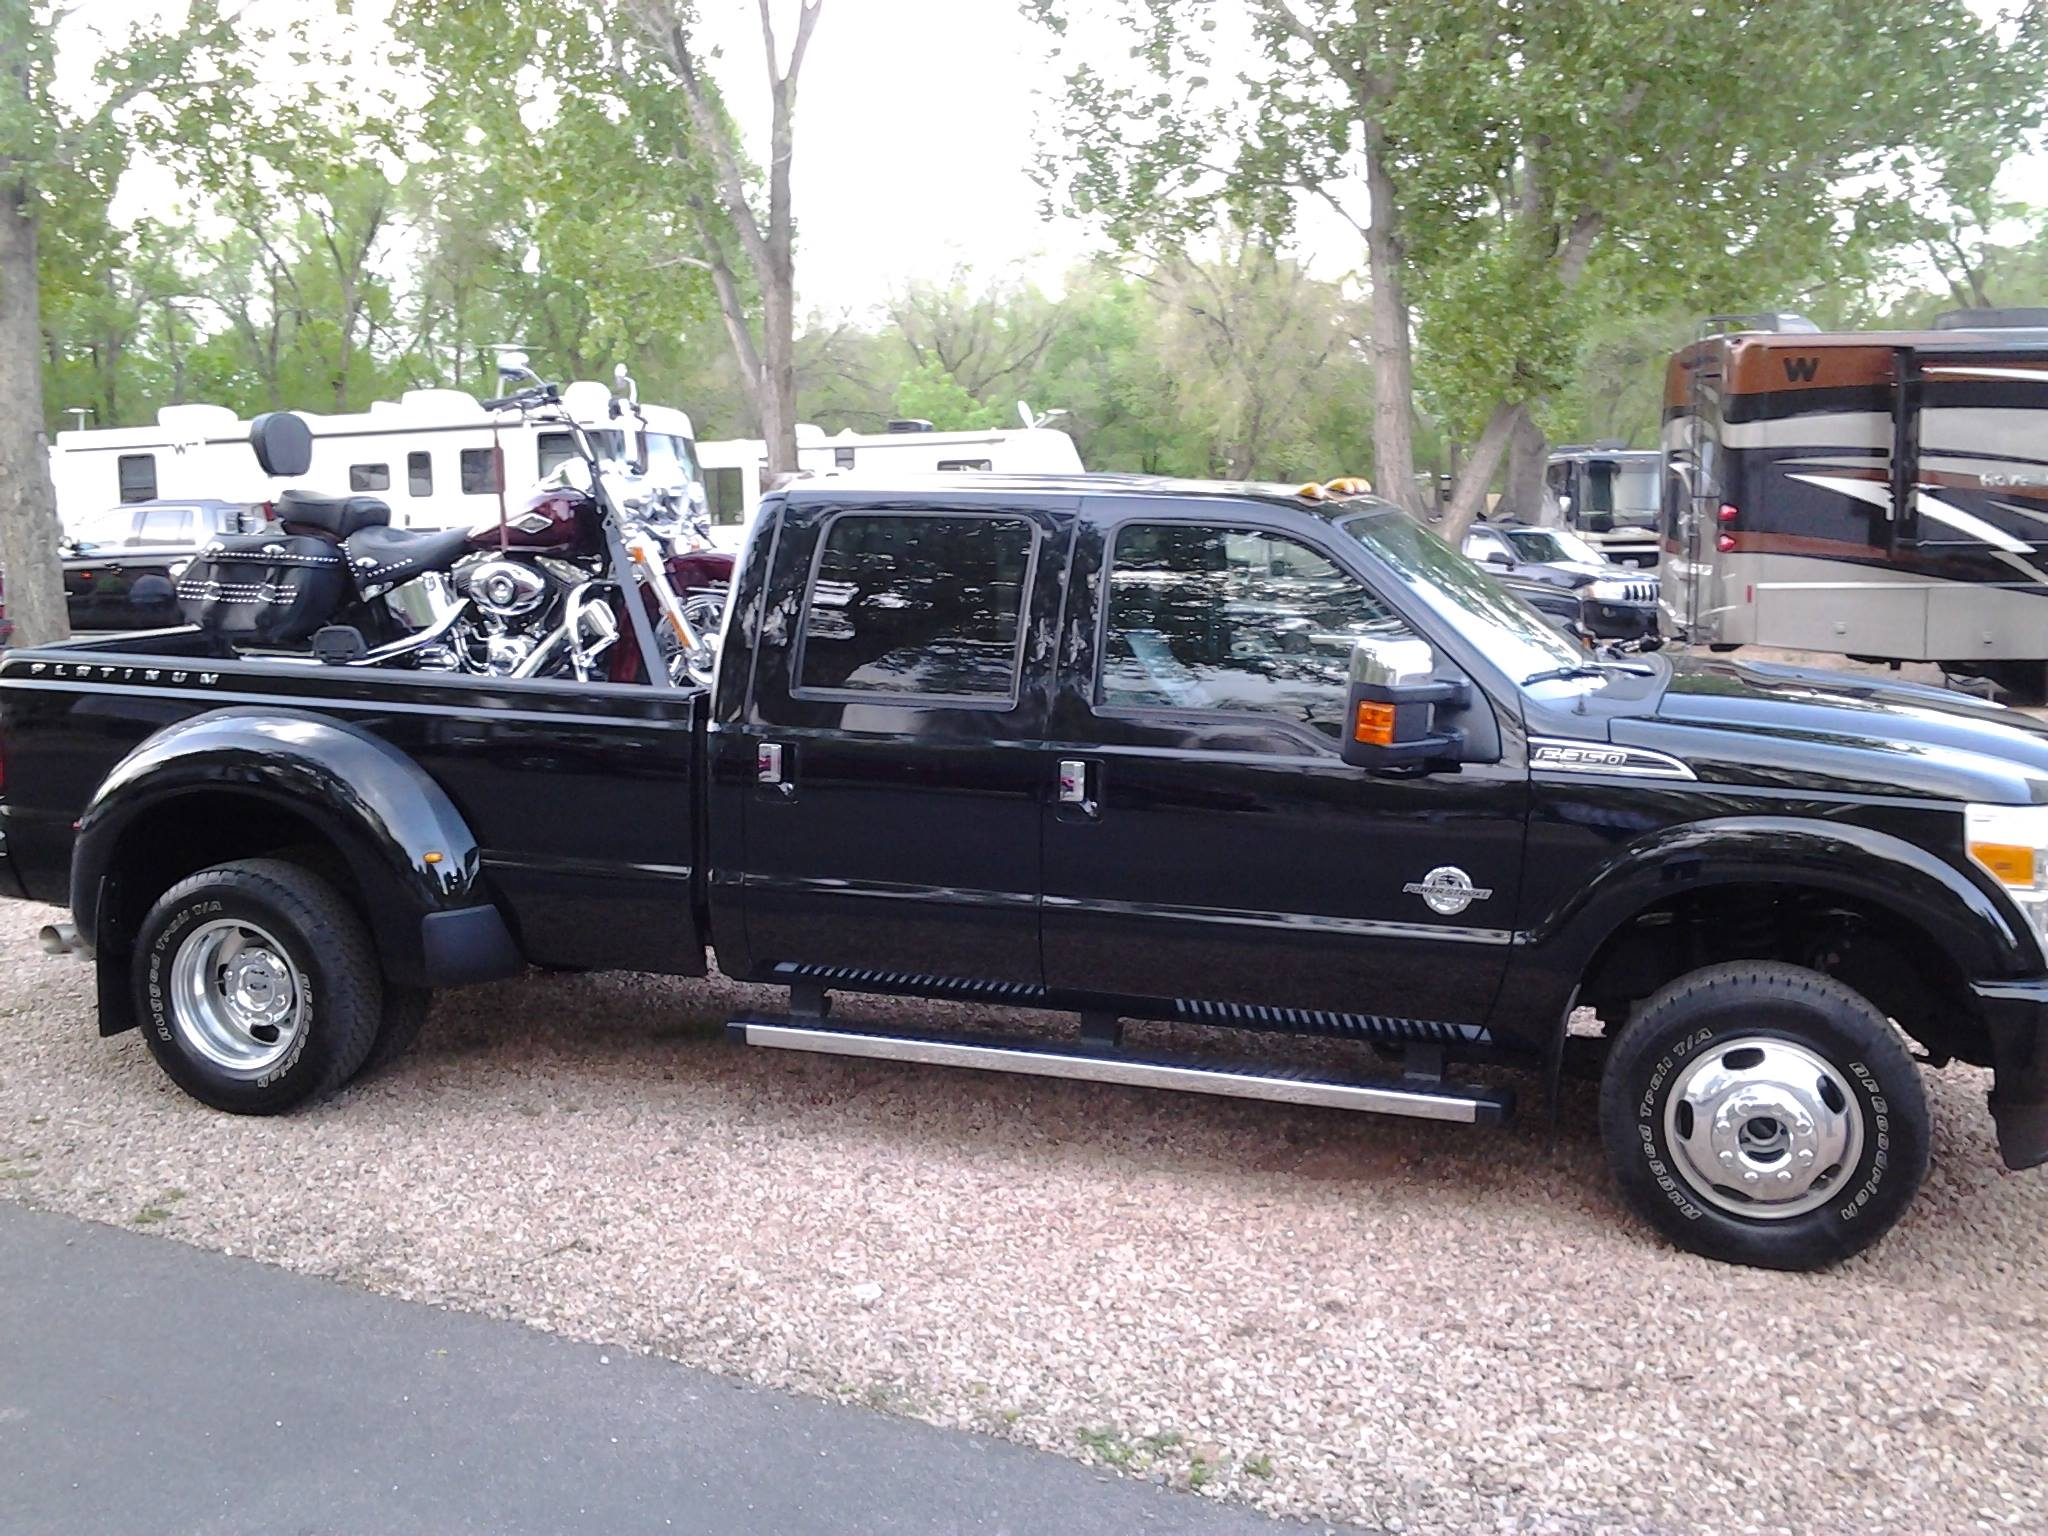 loadall_load-all_motorcycle_loading_ramp_ford_f350_long_bed_closed_tailgate